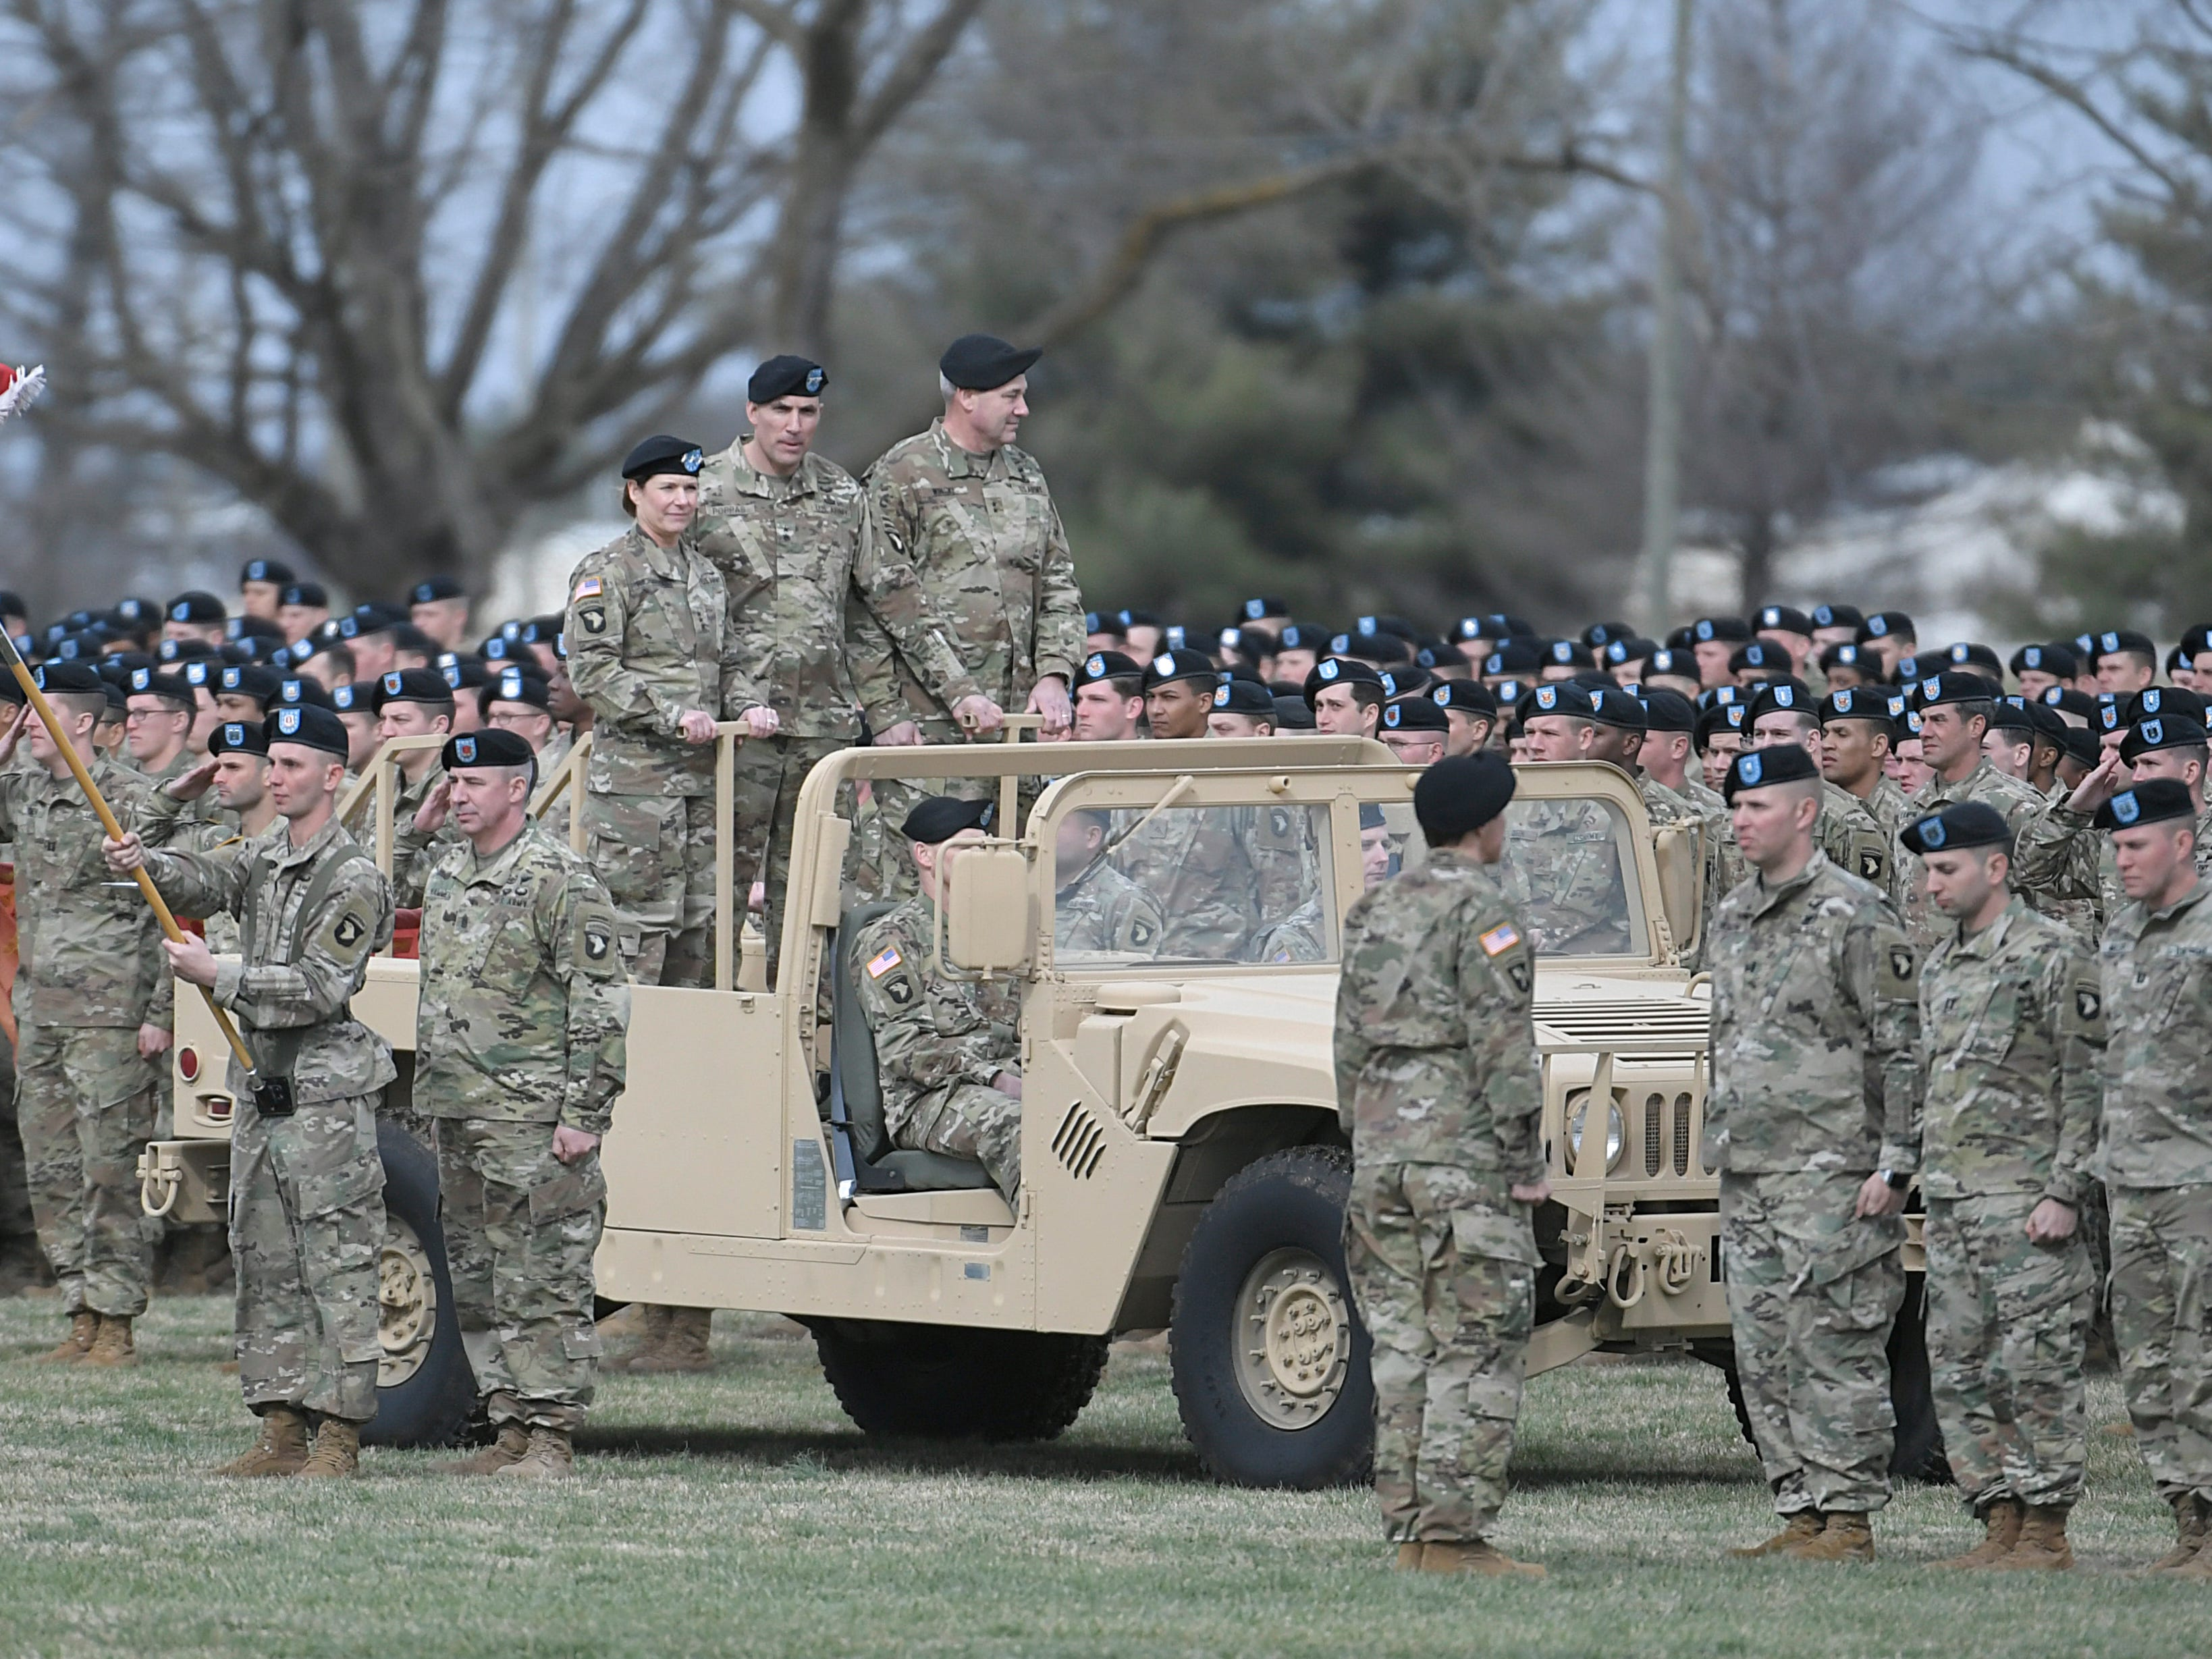 Lieutenant General Laura Richardson, Major General Andrew Poppa and Major General Brian Winski review the troops during a 101st Airborne Division (Air Assault) and Fort Campbell Division Change of Command ceremony in Fort Campbell, KY on Thursday, Feb. 14, 2019.